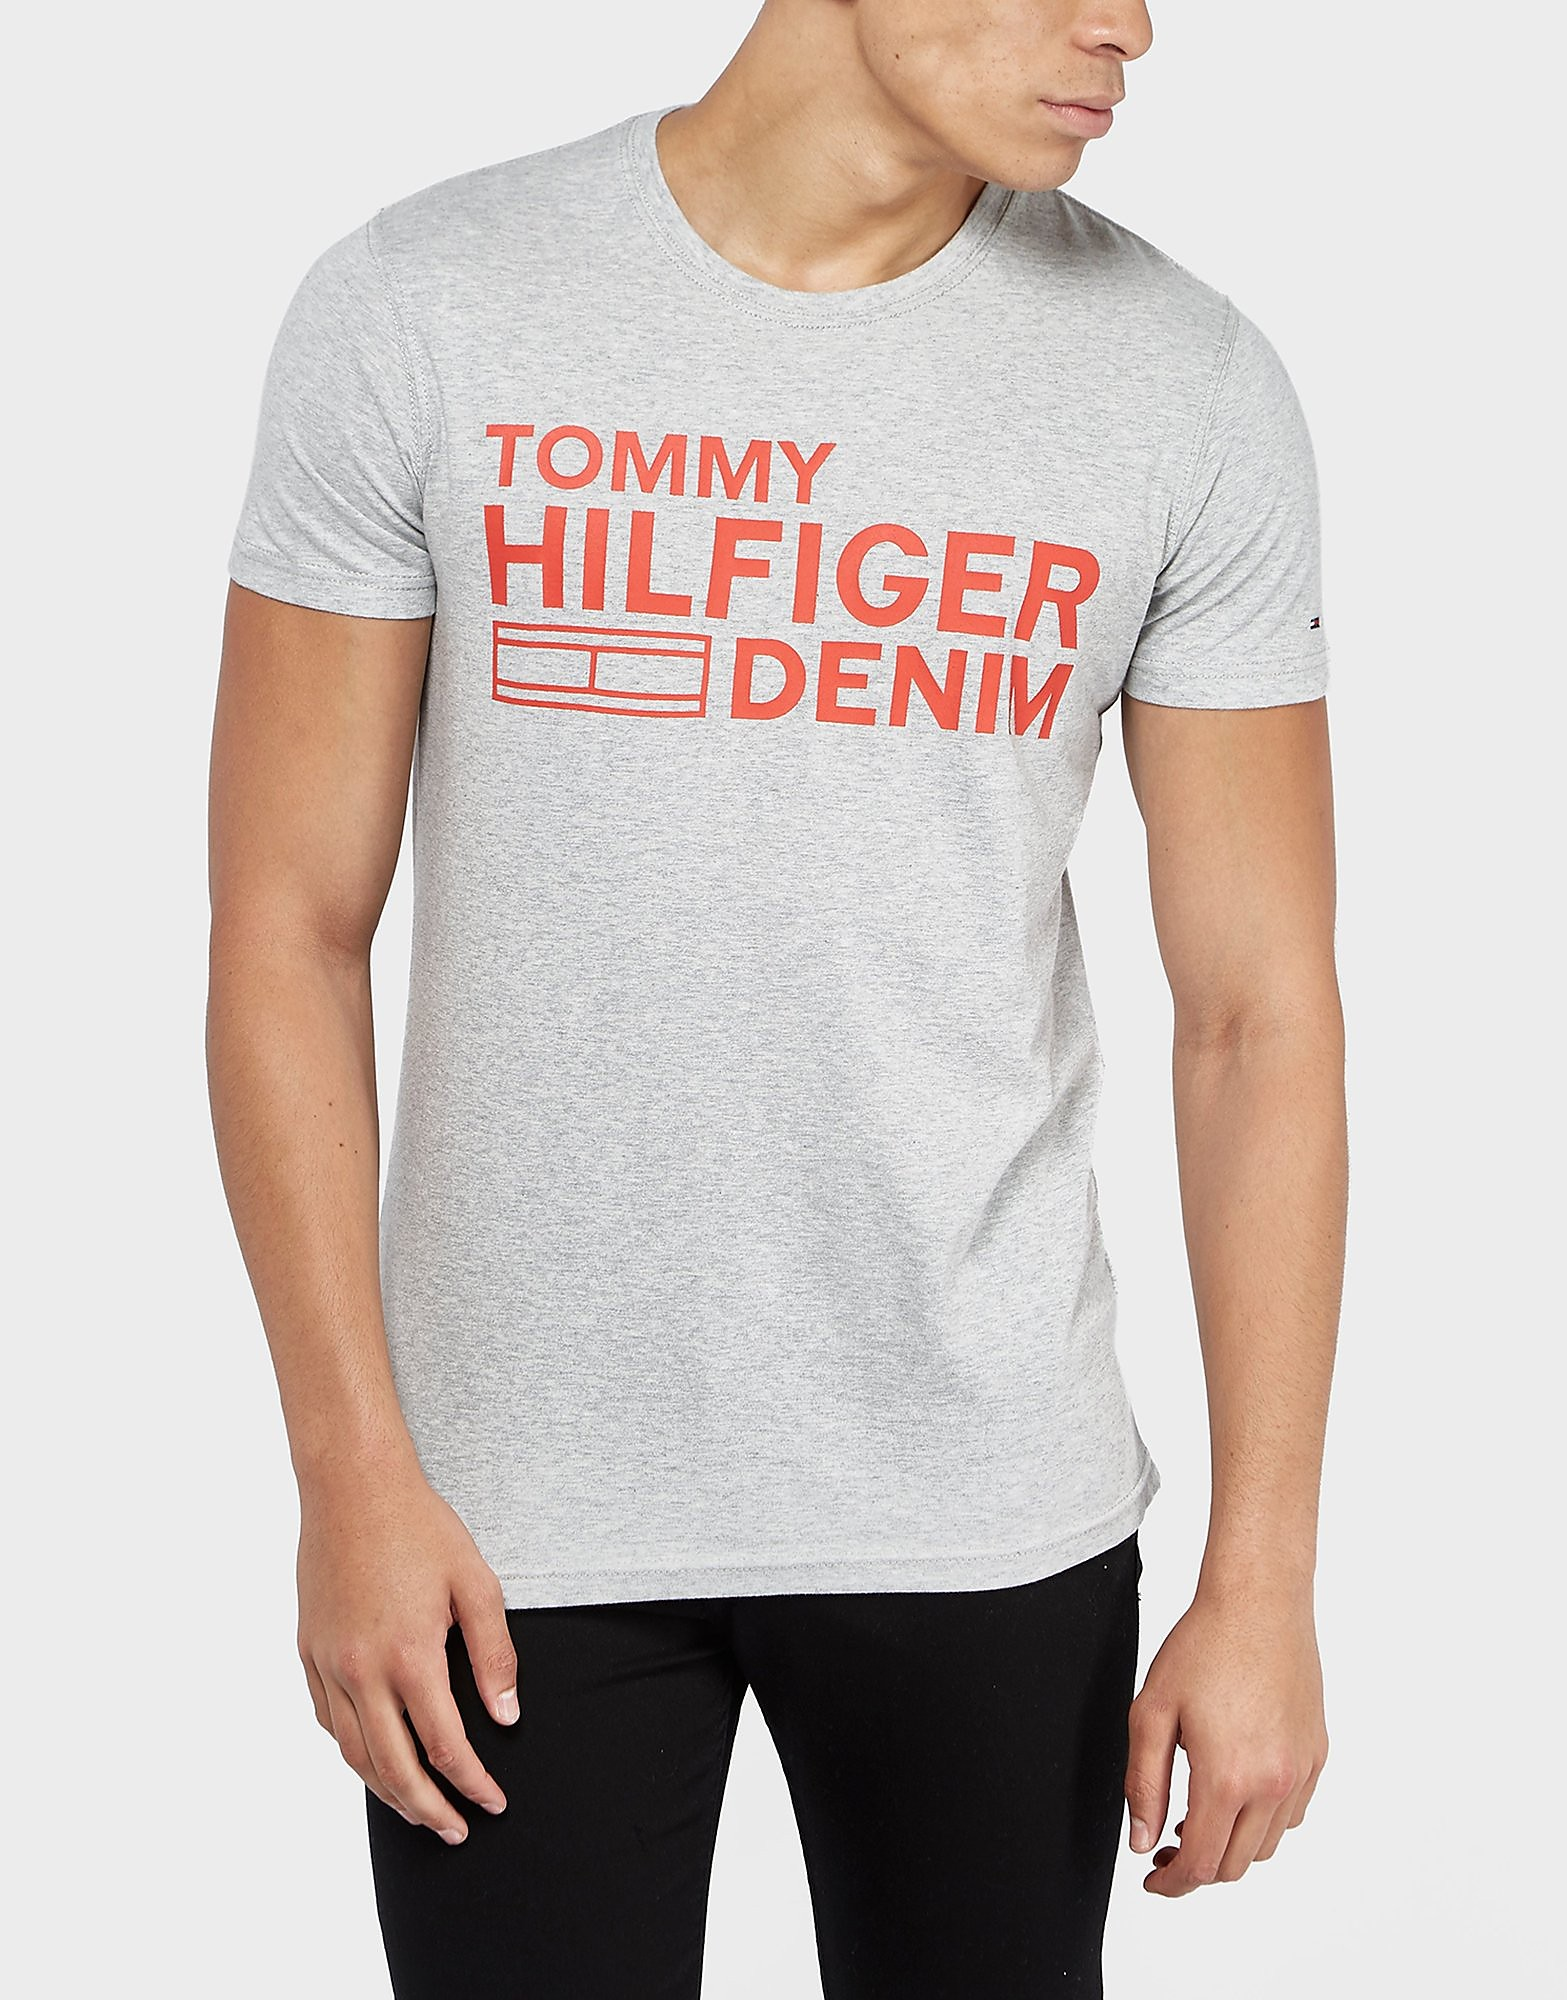 Tommy Hilfiger Branded Short Sleeve T-Shirt